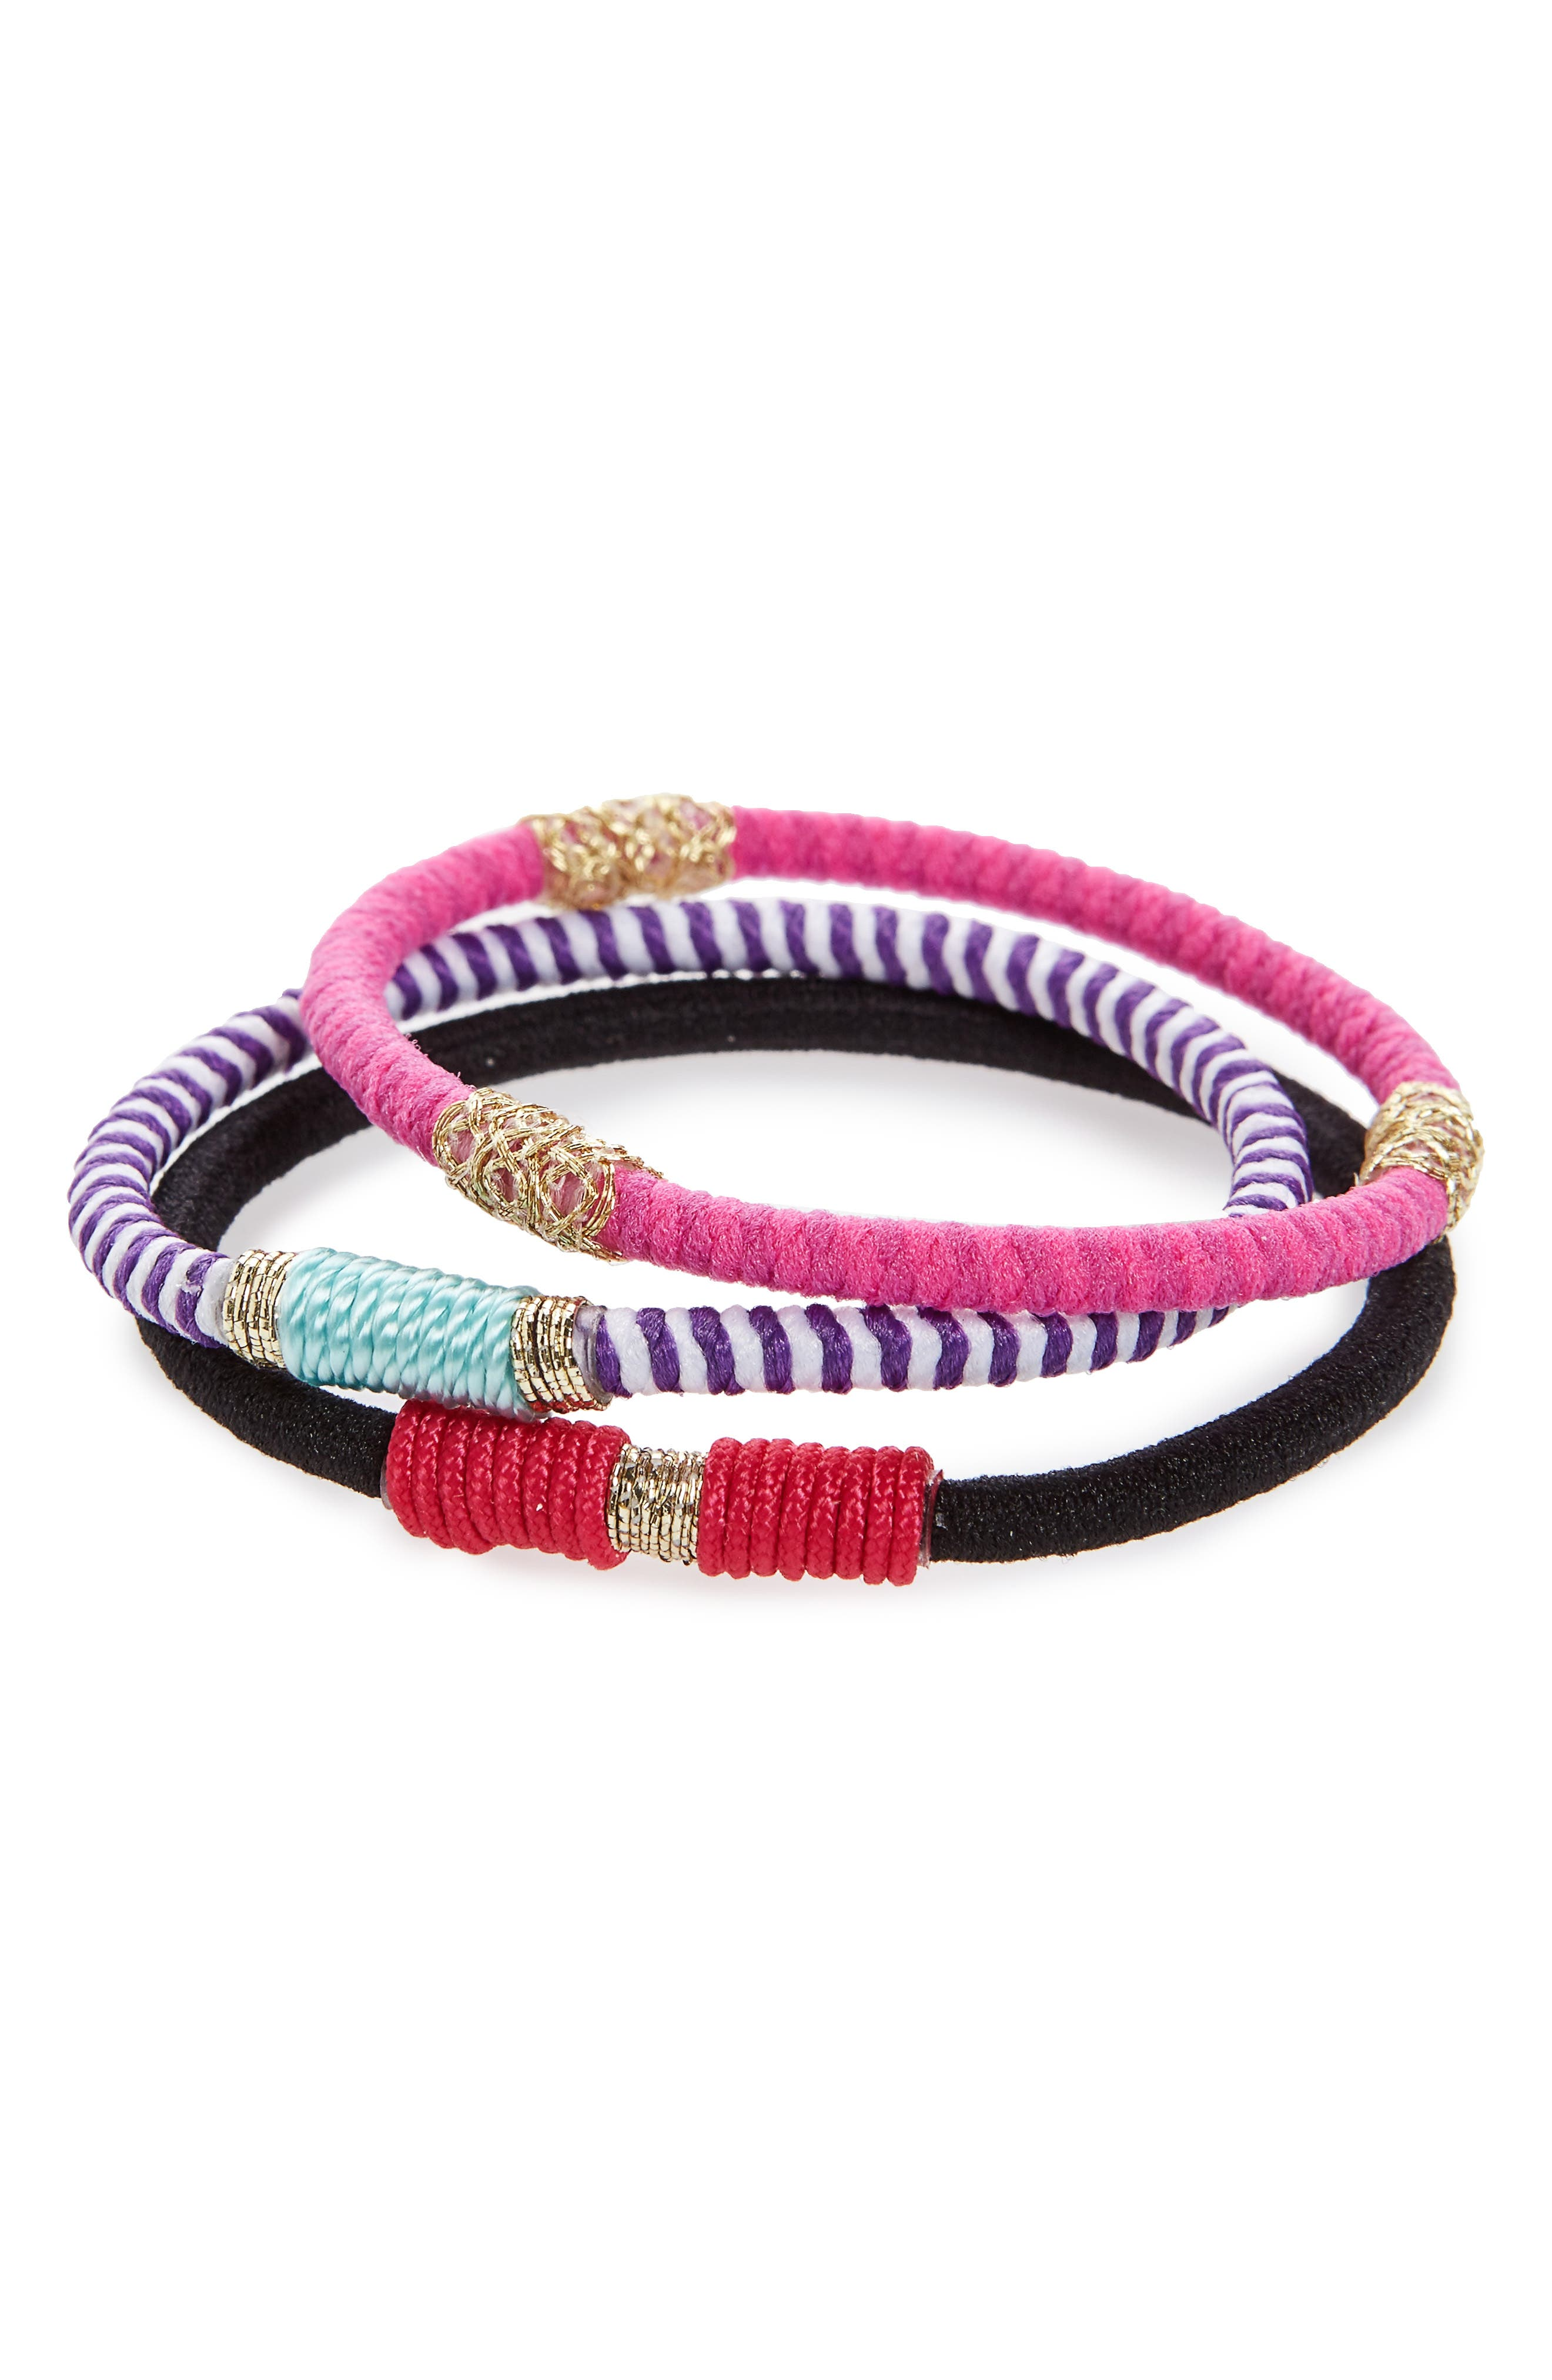 Moroccan Set of 3 Ponytail Holders,                         Main,                         color, Pink/ Purple Multi